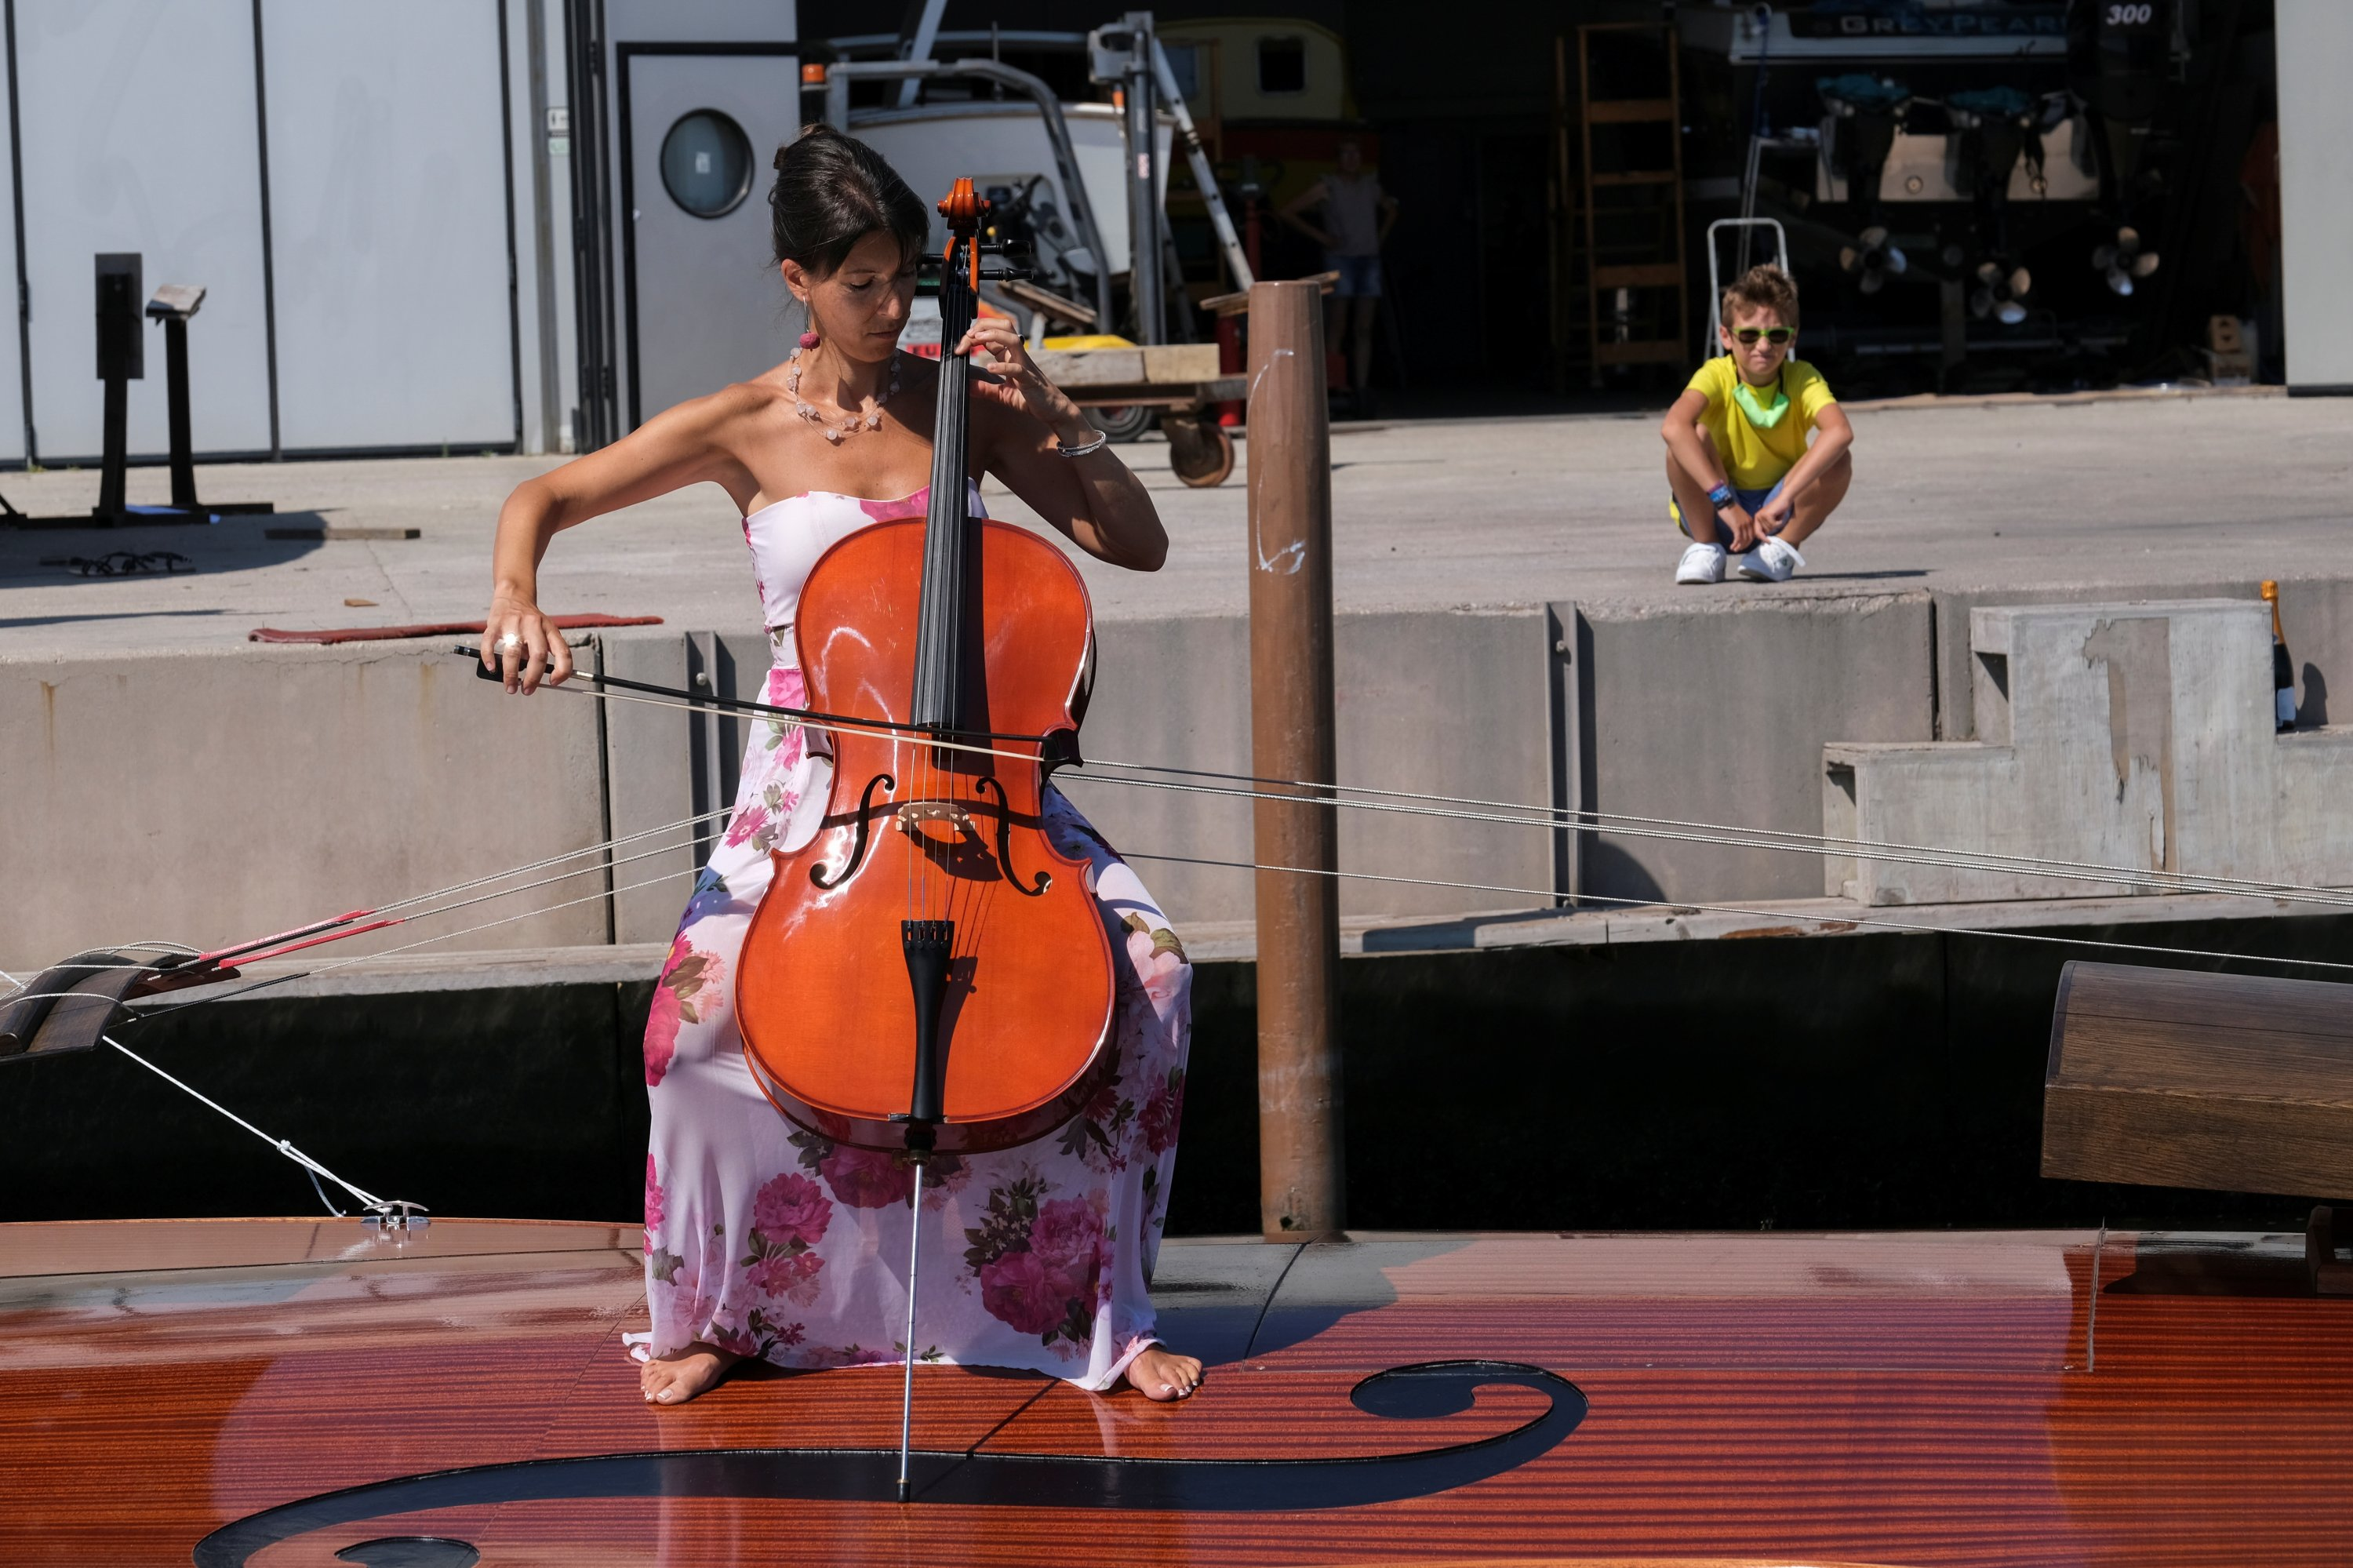 A musician plays a cello onboard a boat in the shape of a violin, titled 'Violin of Noah', that was built during the pandemic by artist Livio De Marchi in collaboration with Consorzio Venezia Sviluppo and is dedicated to people who have died from coronavirus, during a test-ride, in Venice, Italy, August 6, 2021. (Reuters Photo)